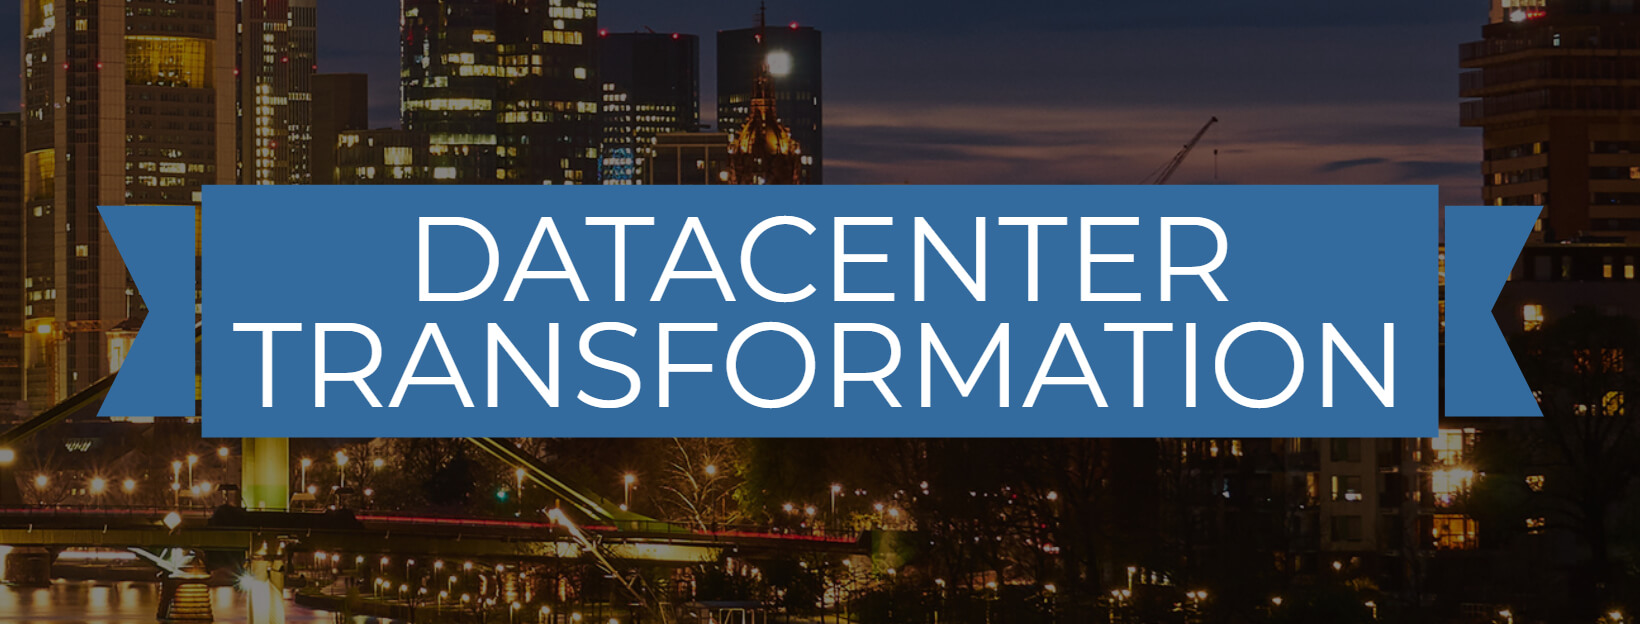 Save the Date! Datacenter Transformation 2018: Sept 20th 2018, Frankfurt